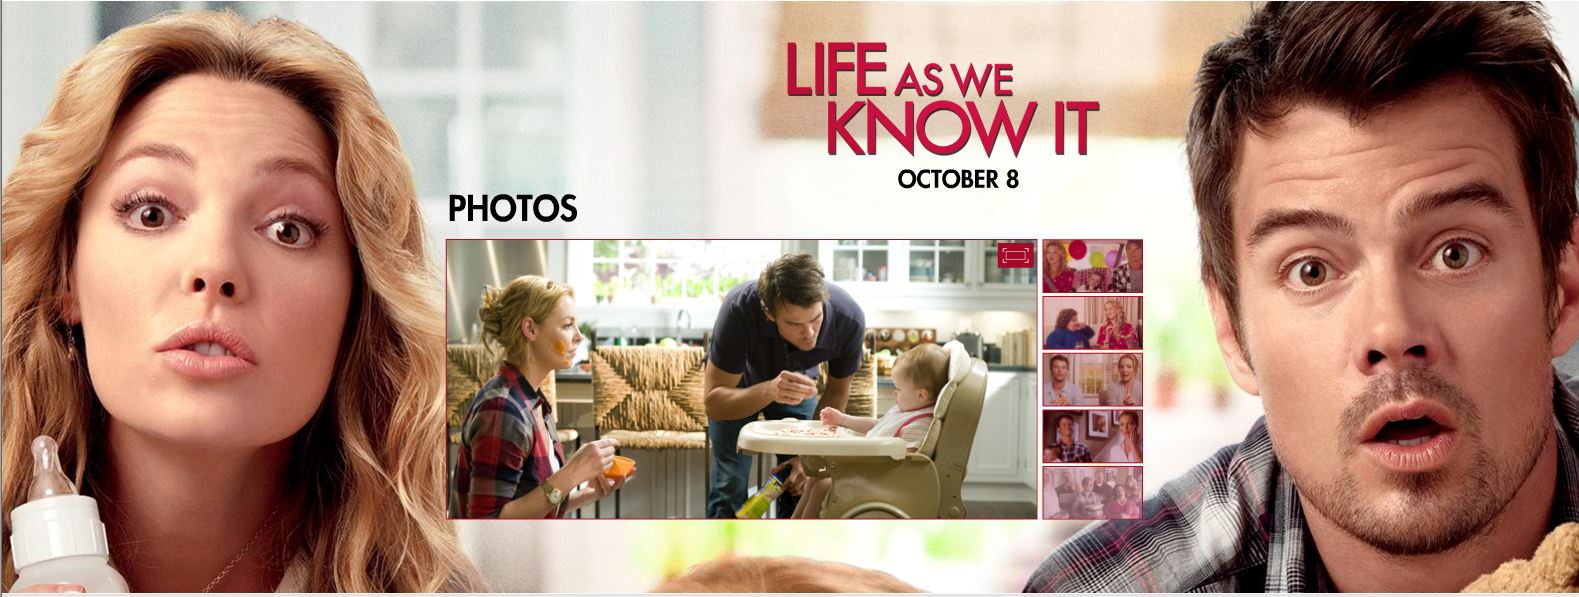 life as we knew it Life as we knew it is one of the year's best books you will read it in one sitting, fighting back tears as you bite your nails reviewed by carlie webber on october 18, 2011.